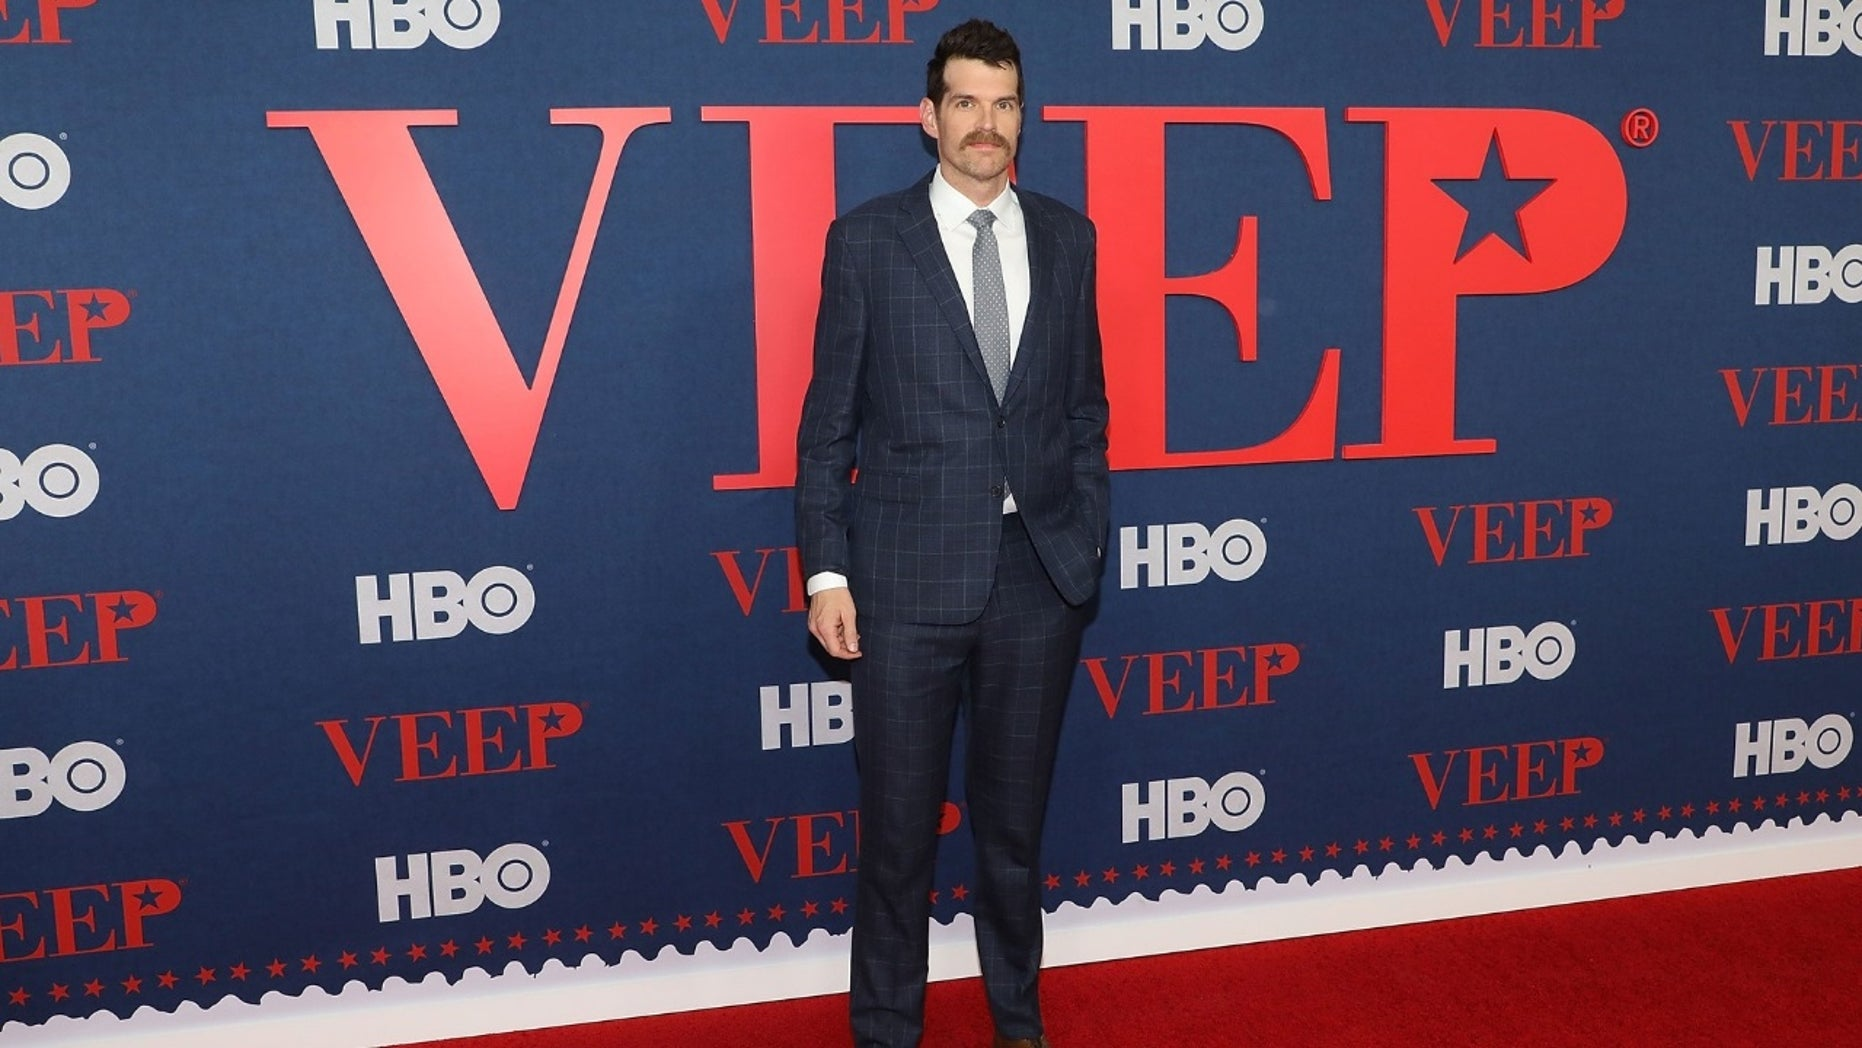 """""""Veep"""" star Timothy Simons, who plays fictional character Jonah Ryan on the hit HBO show """"Veep,"""" revealed Tuesday which Republican senator inspired his role."""